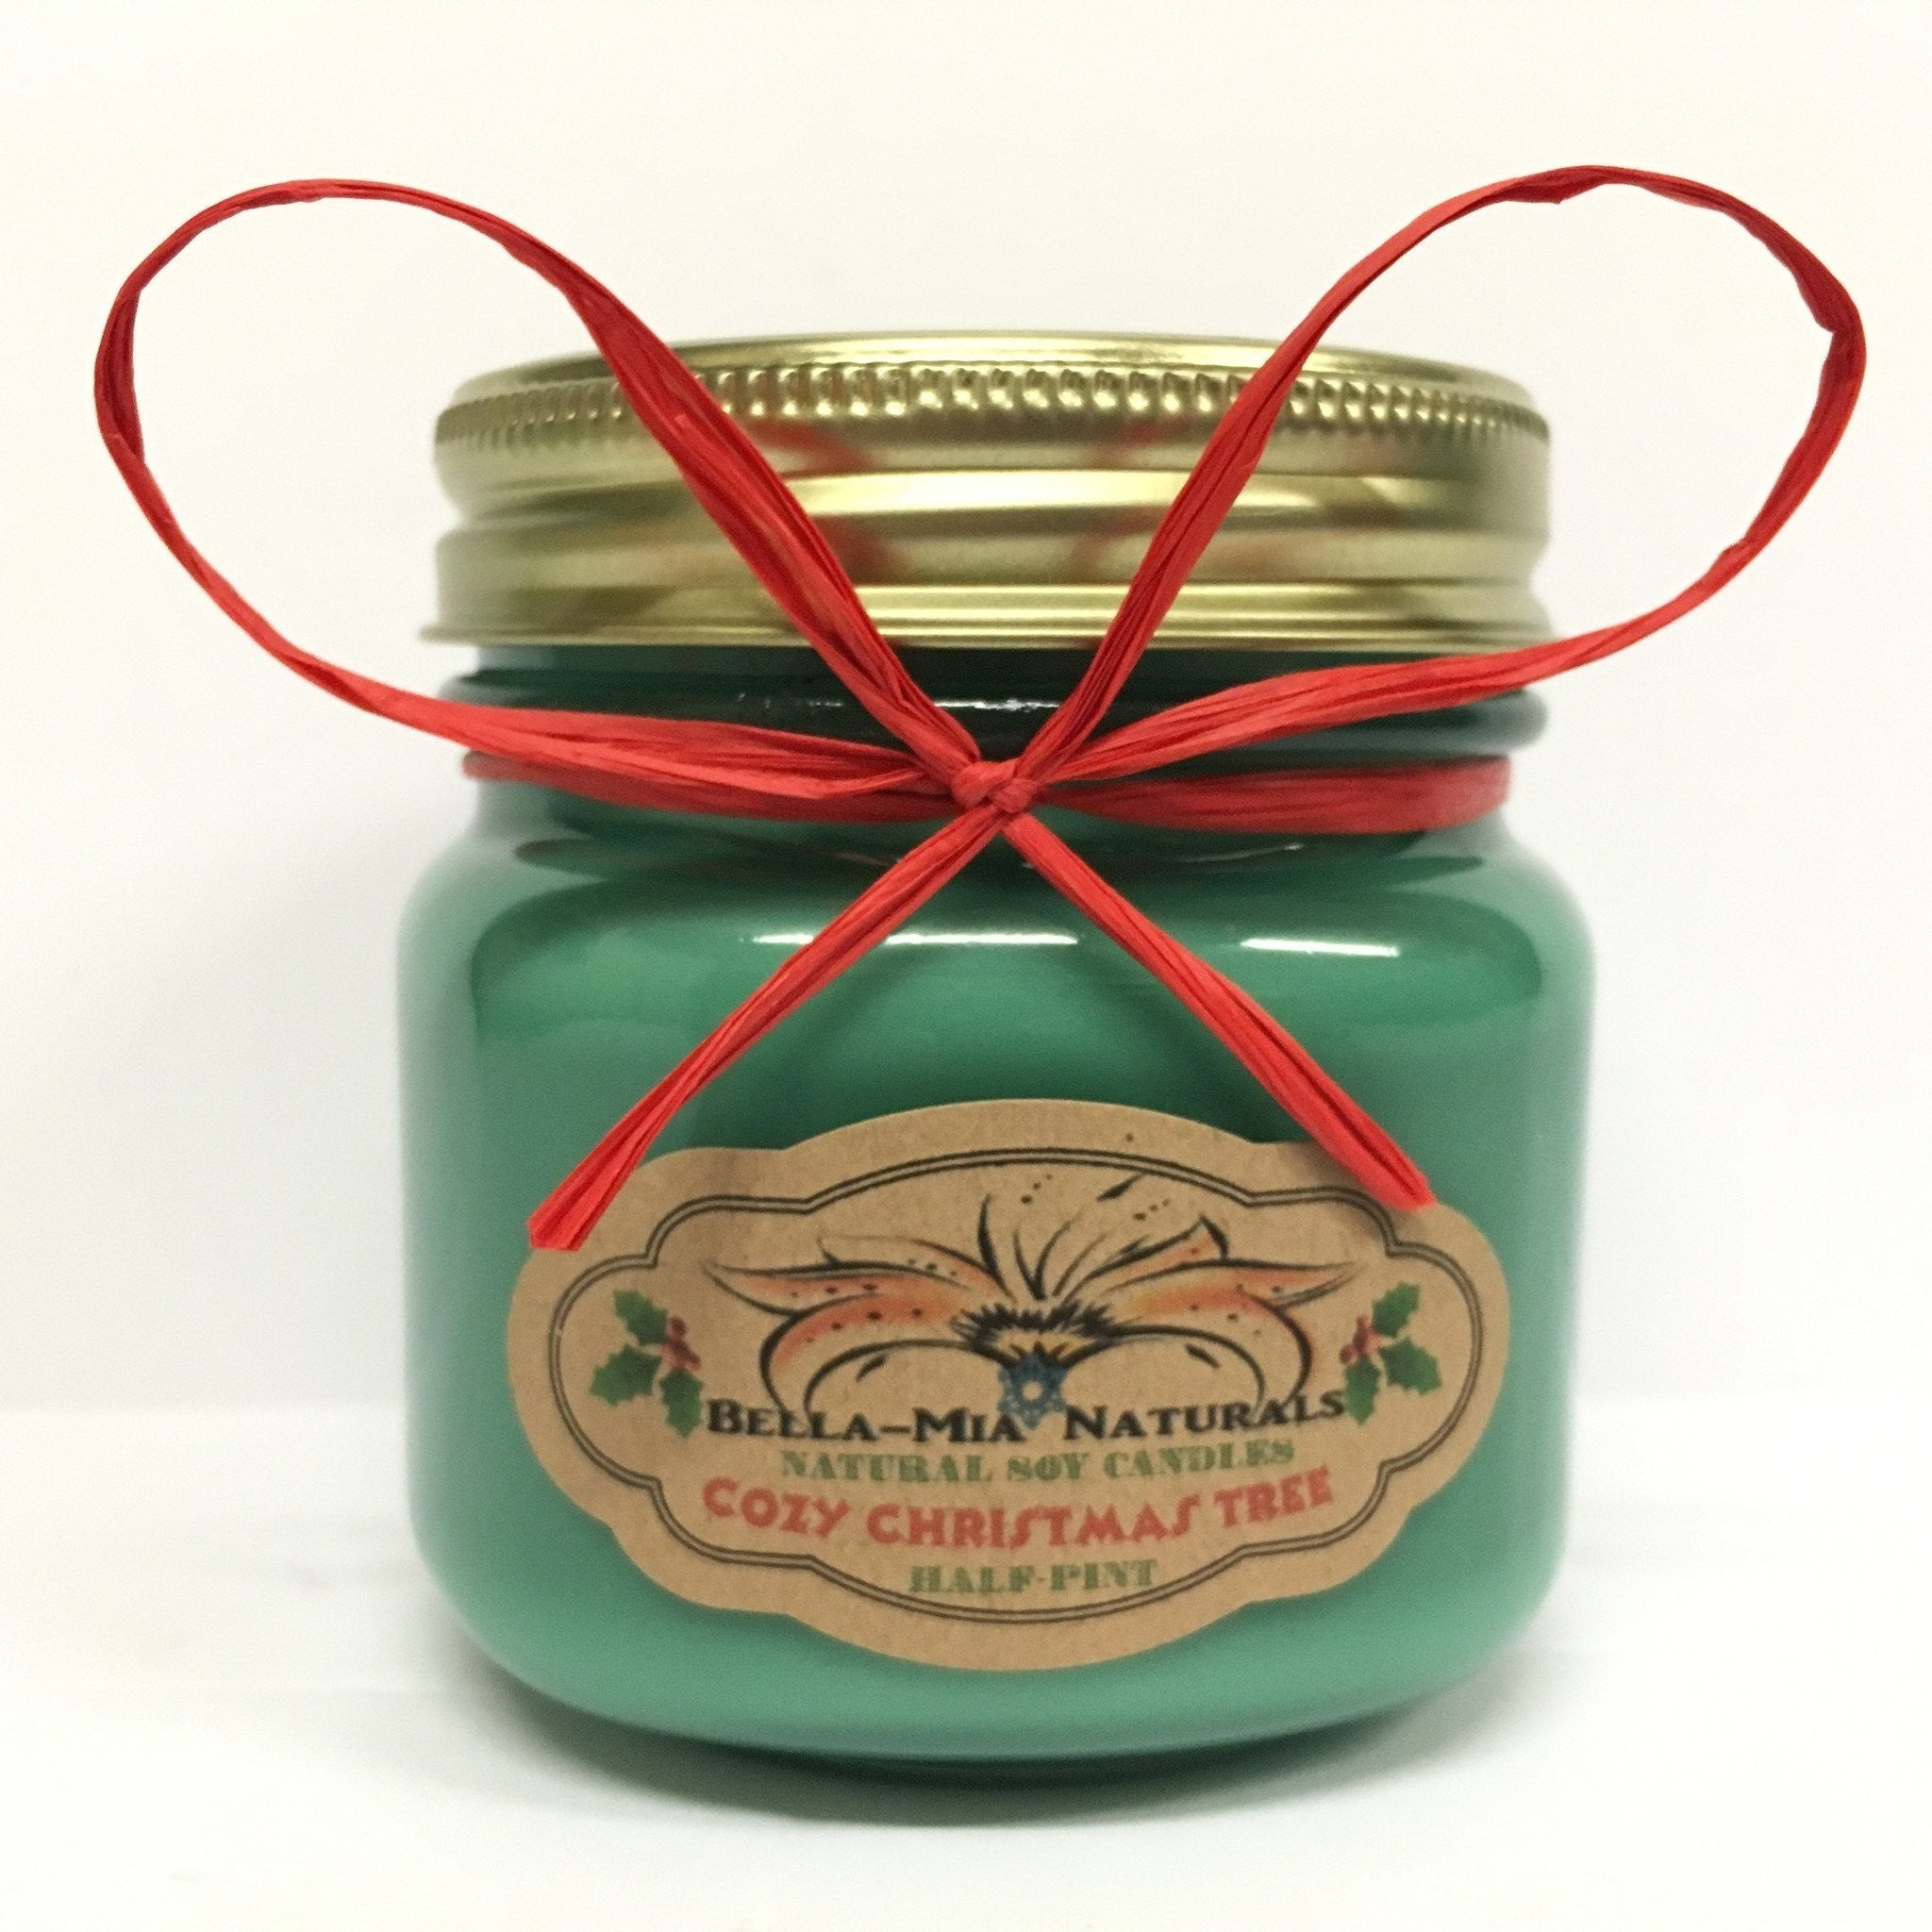 Cozy Christmas Tree Natural Hand Poured Soy Candles - Half-Pint - Bella-Mia Naturals All Natural Soy Candles & Lip Balms - 3